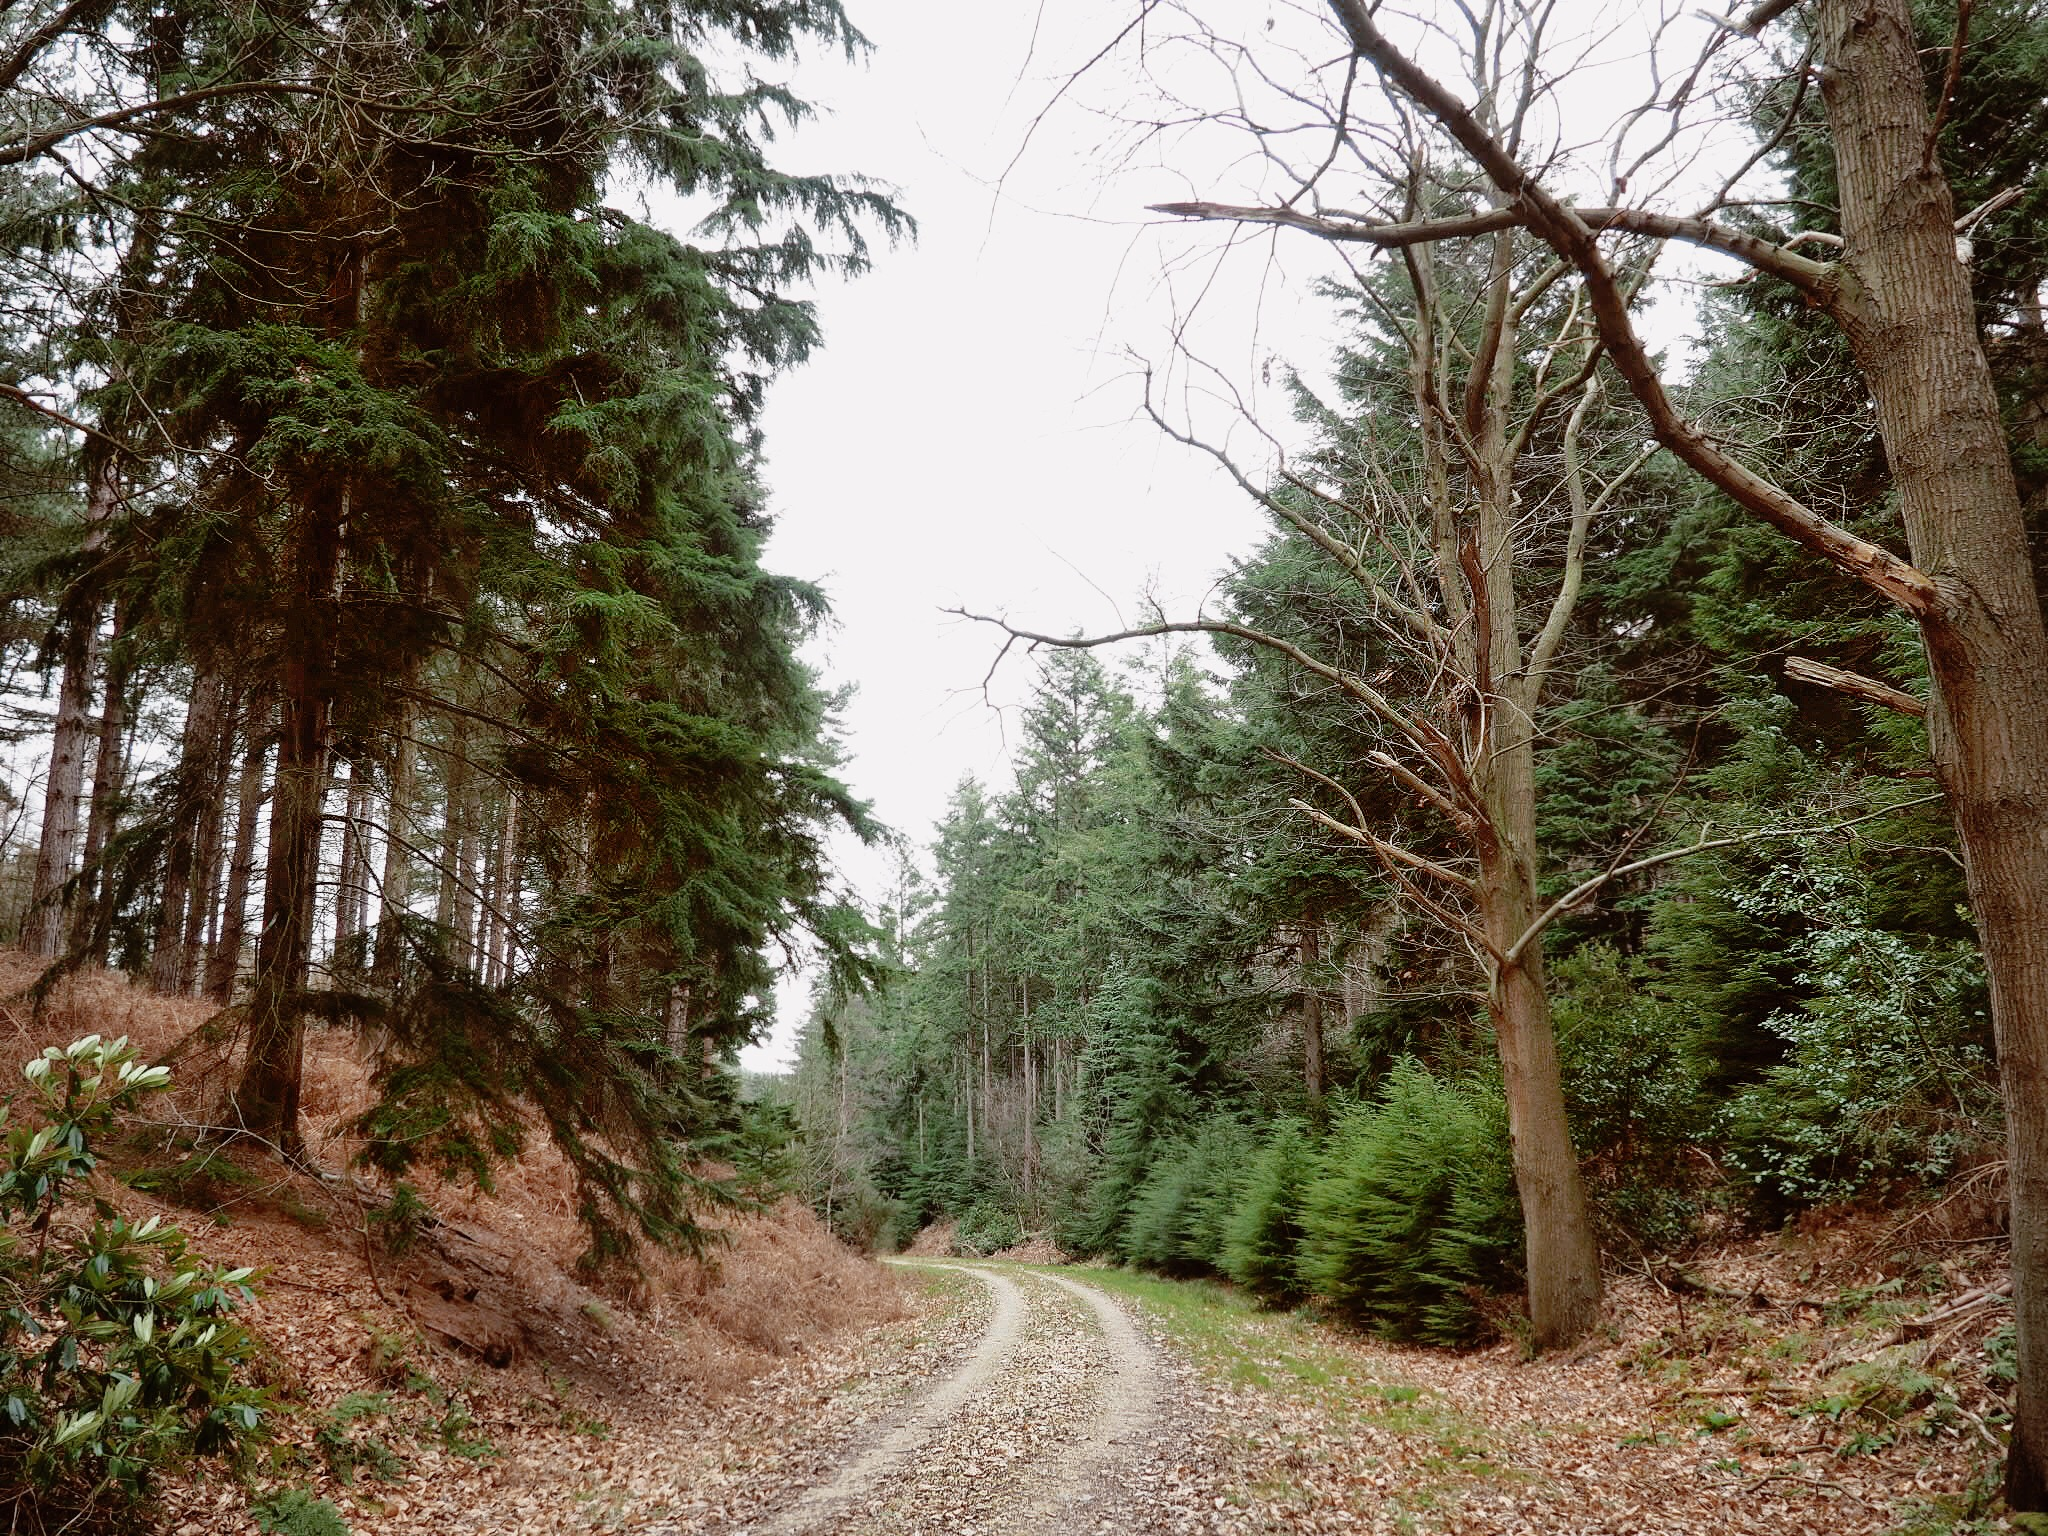 Forest road through the pines